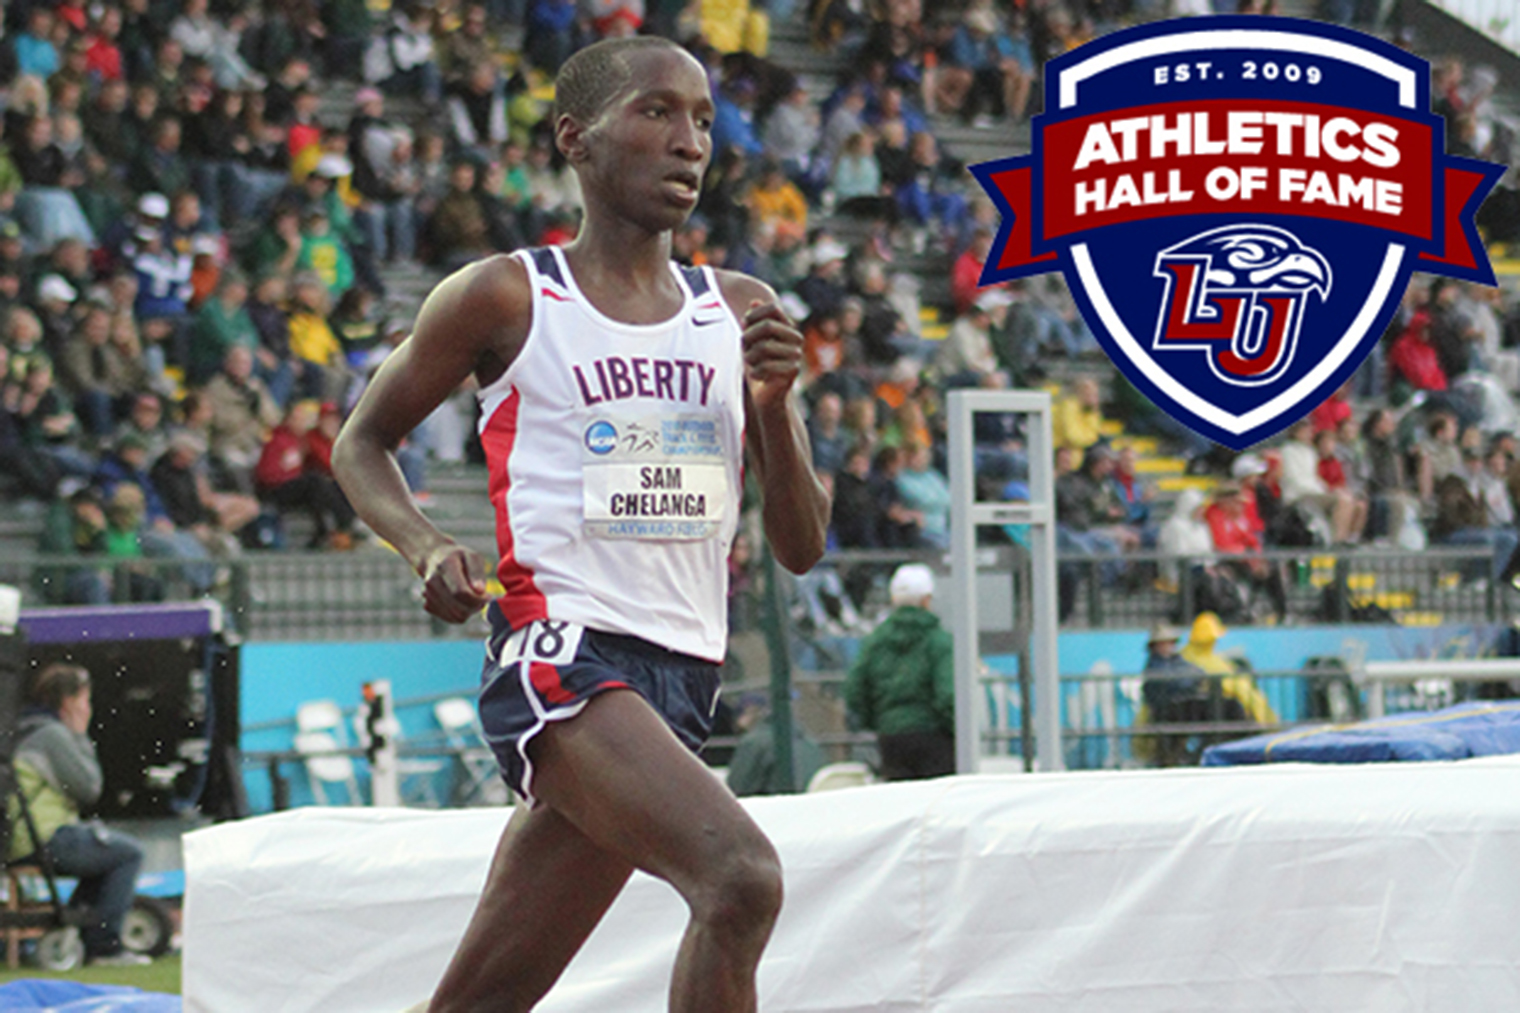 Sam Chelanga ranks among Liberty University's most successful NCAA DI student-athletes as a four-time national champion.